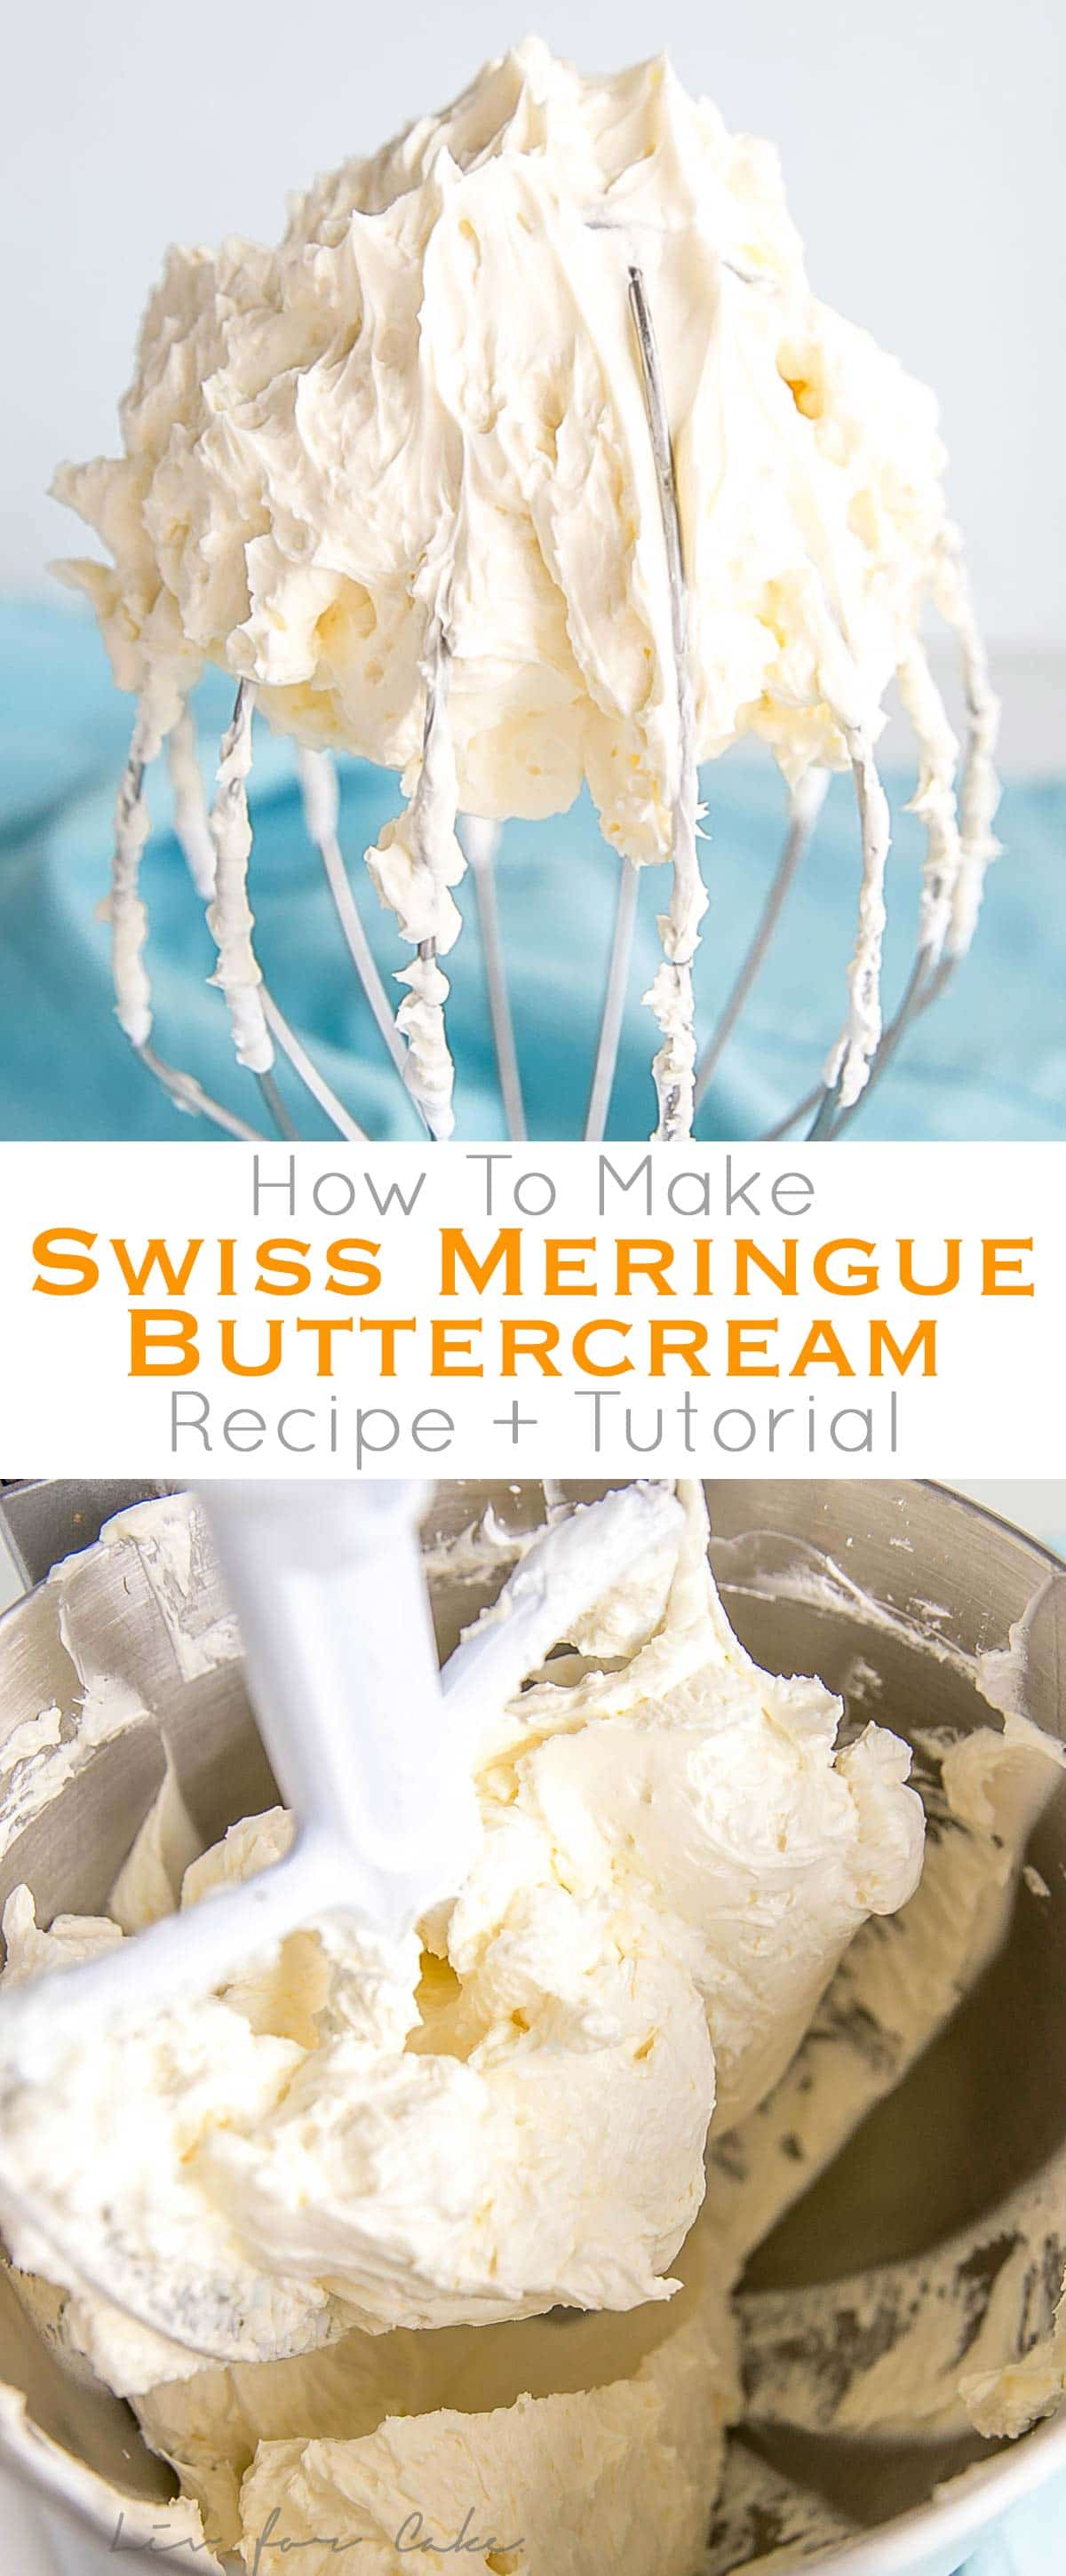 This tutorial on how to make Swiss Meringue buttercream is the only resource you'll need to make the smoothest, silkiest frosting! It includes step-by-step photos, a troubleshooting guide, and frequently asked questions. | livforcake.com